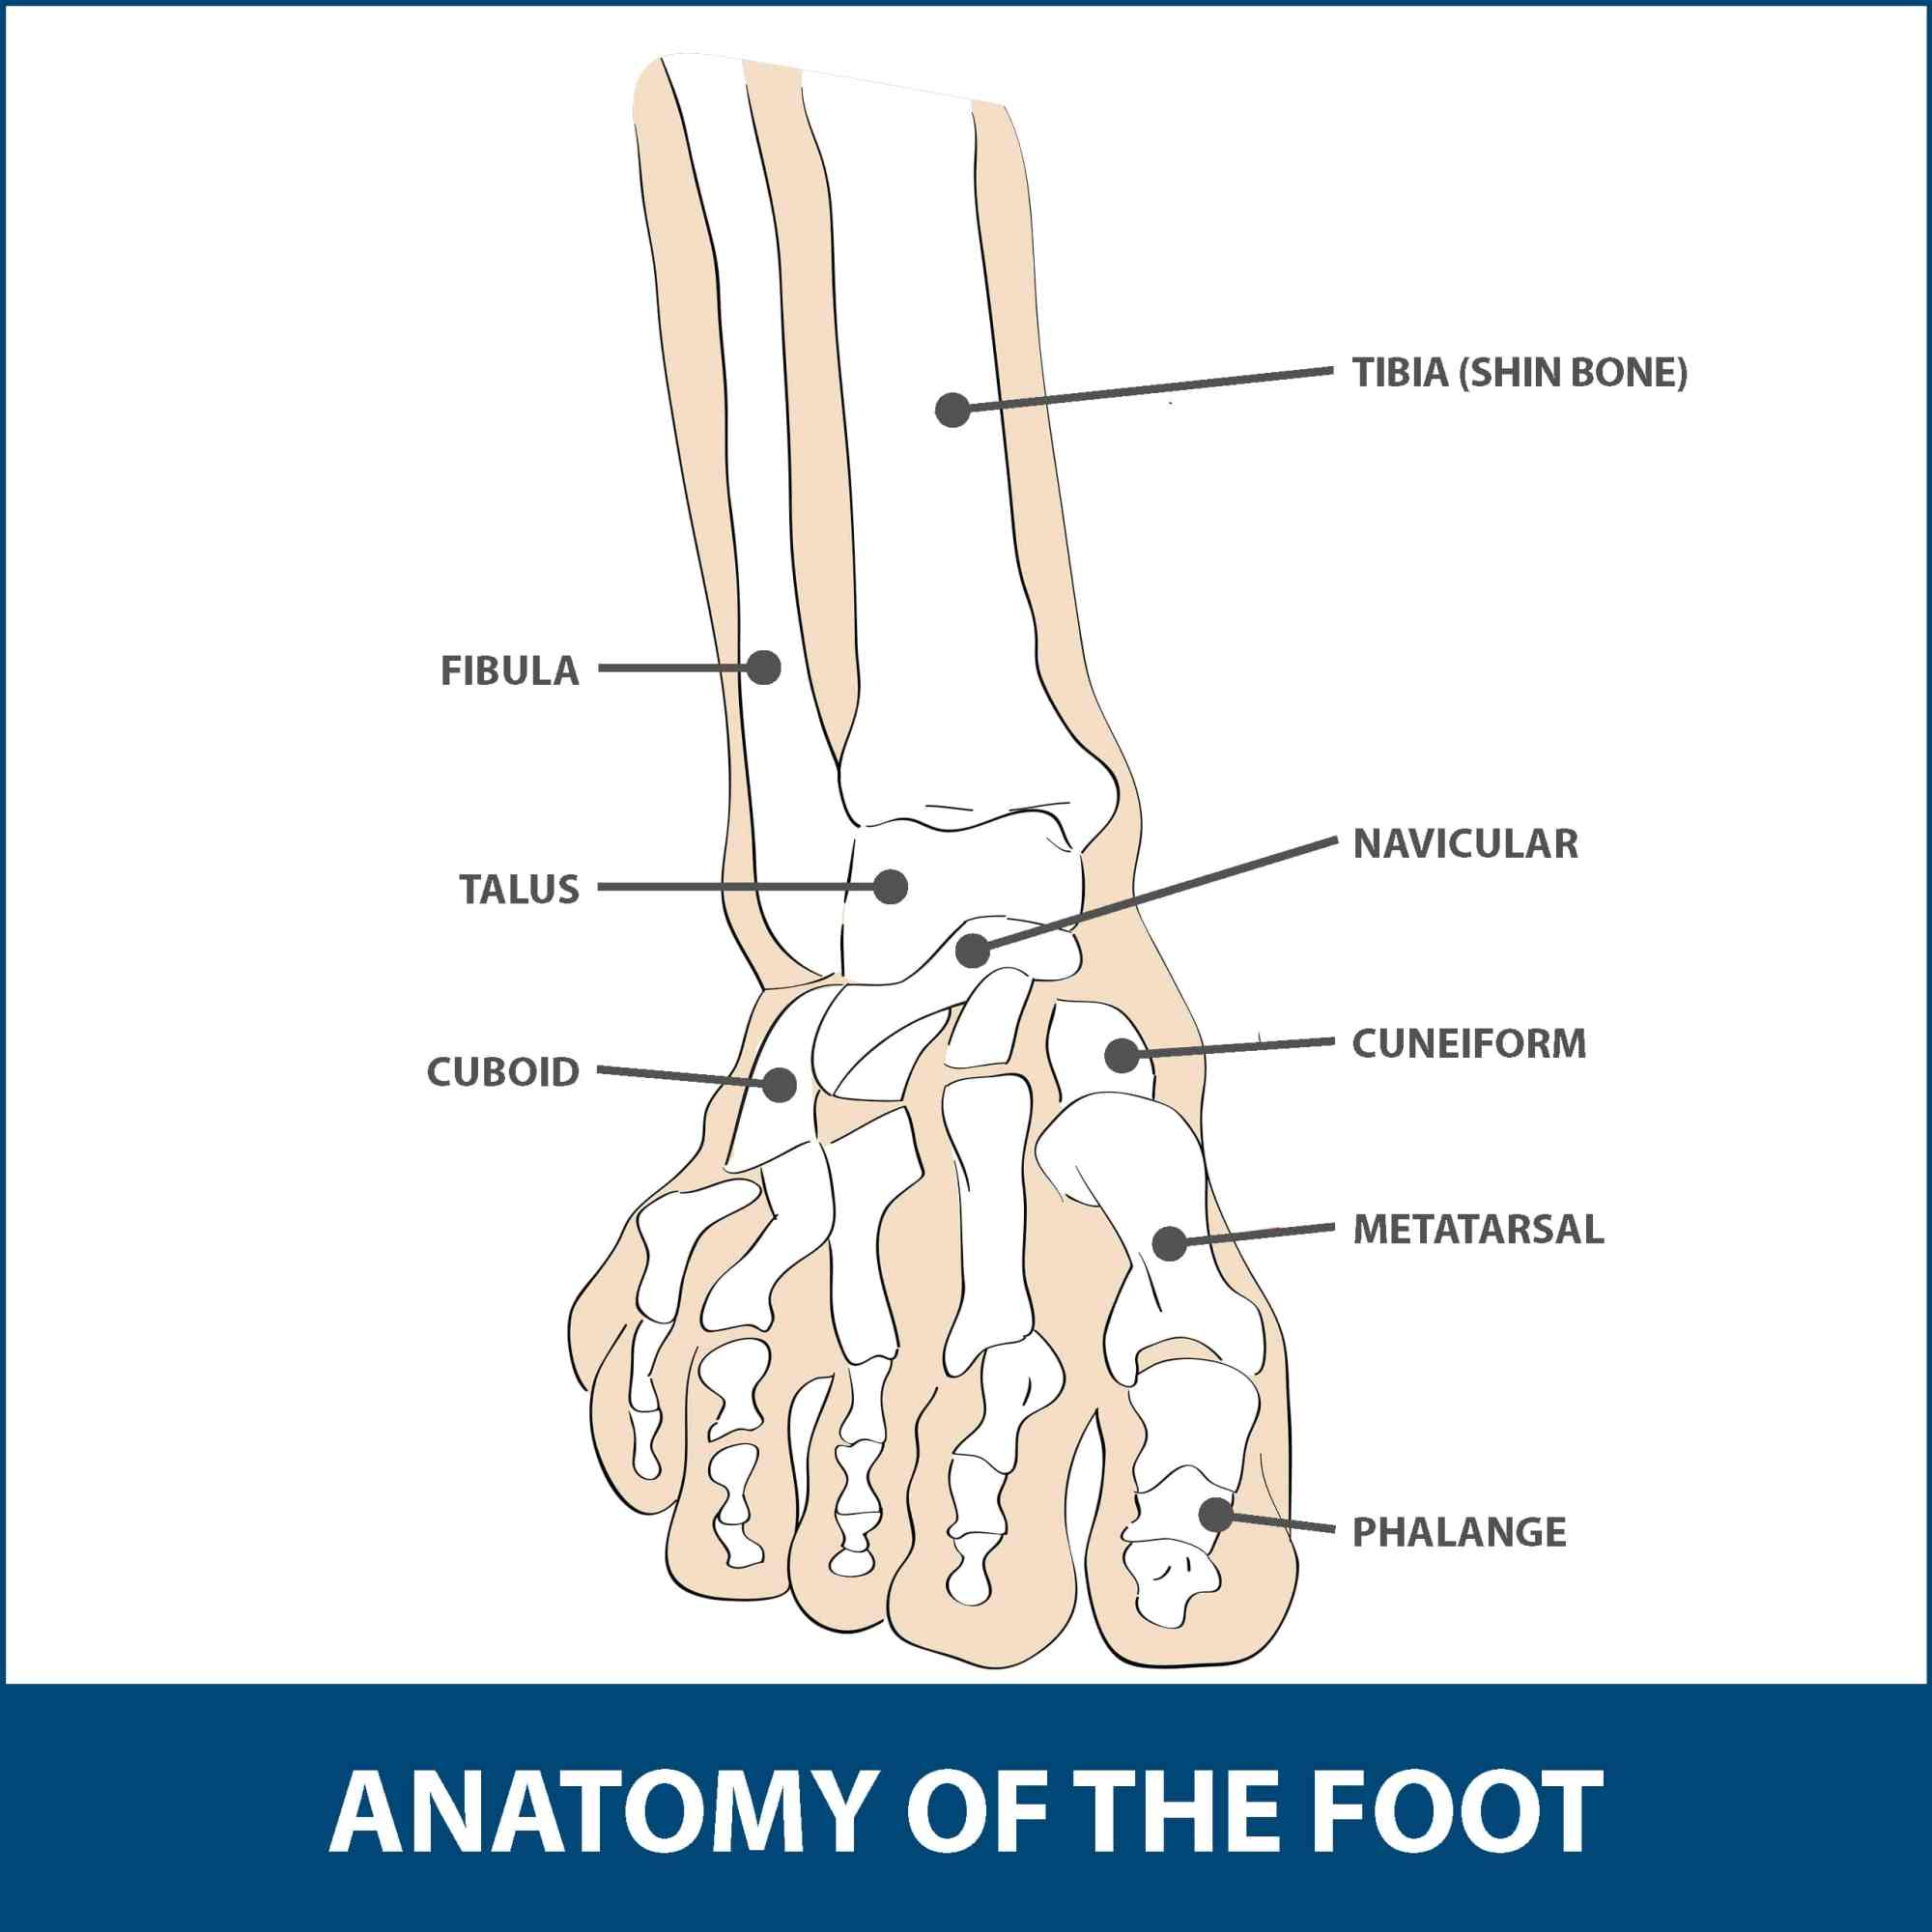 hight resolution of the mtp joint is the largest of the two and is found where the first long bone of the foot metatarsal meets the first bone of the toe phalanx